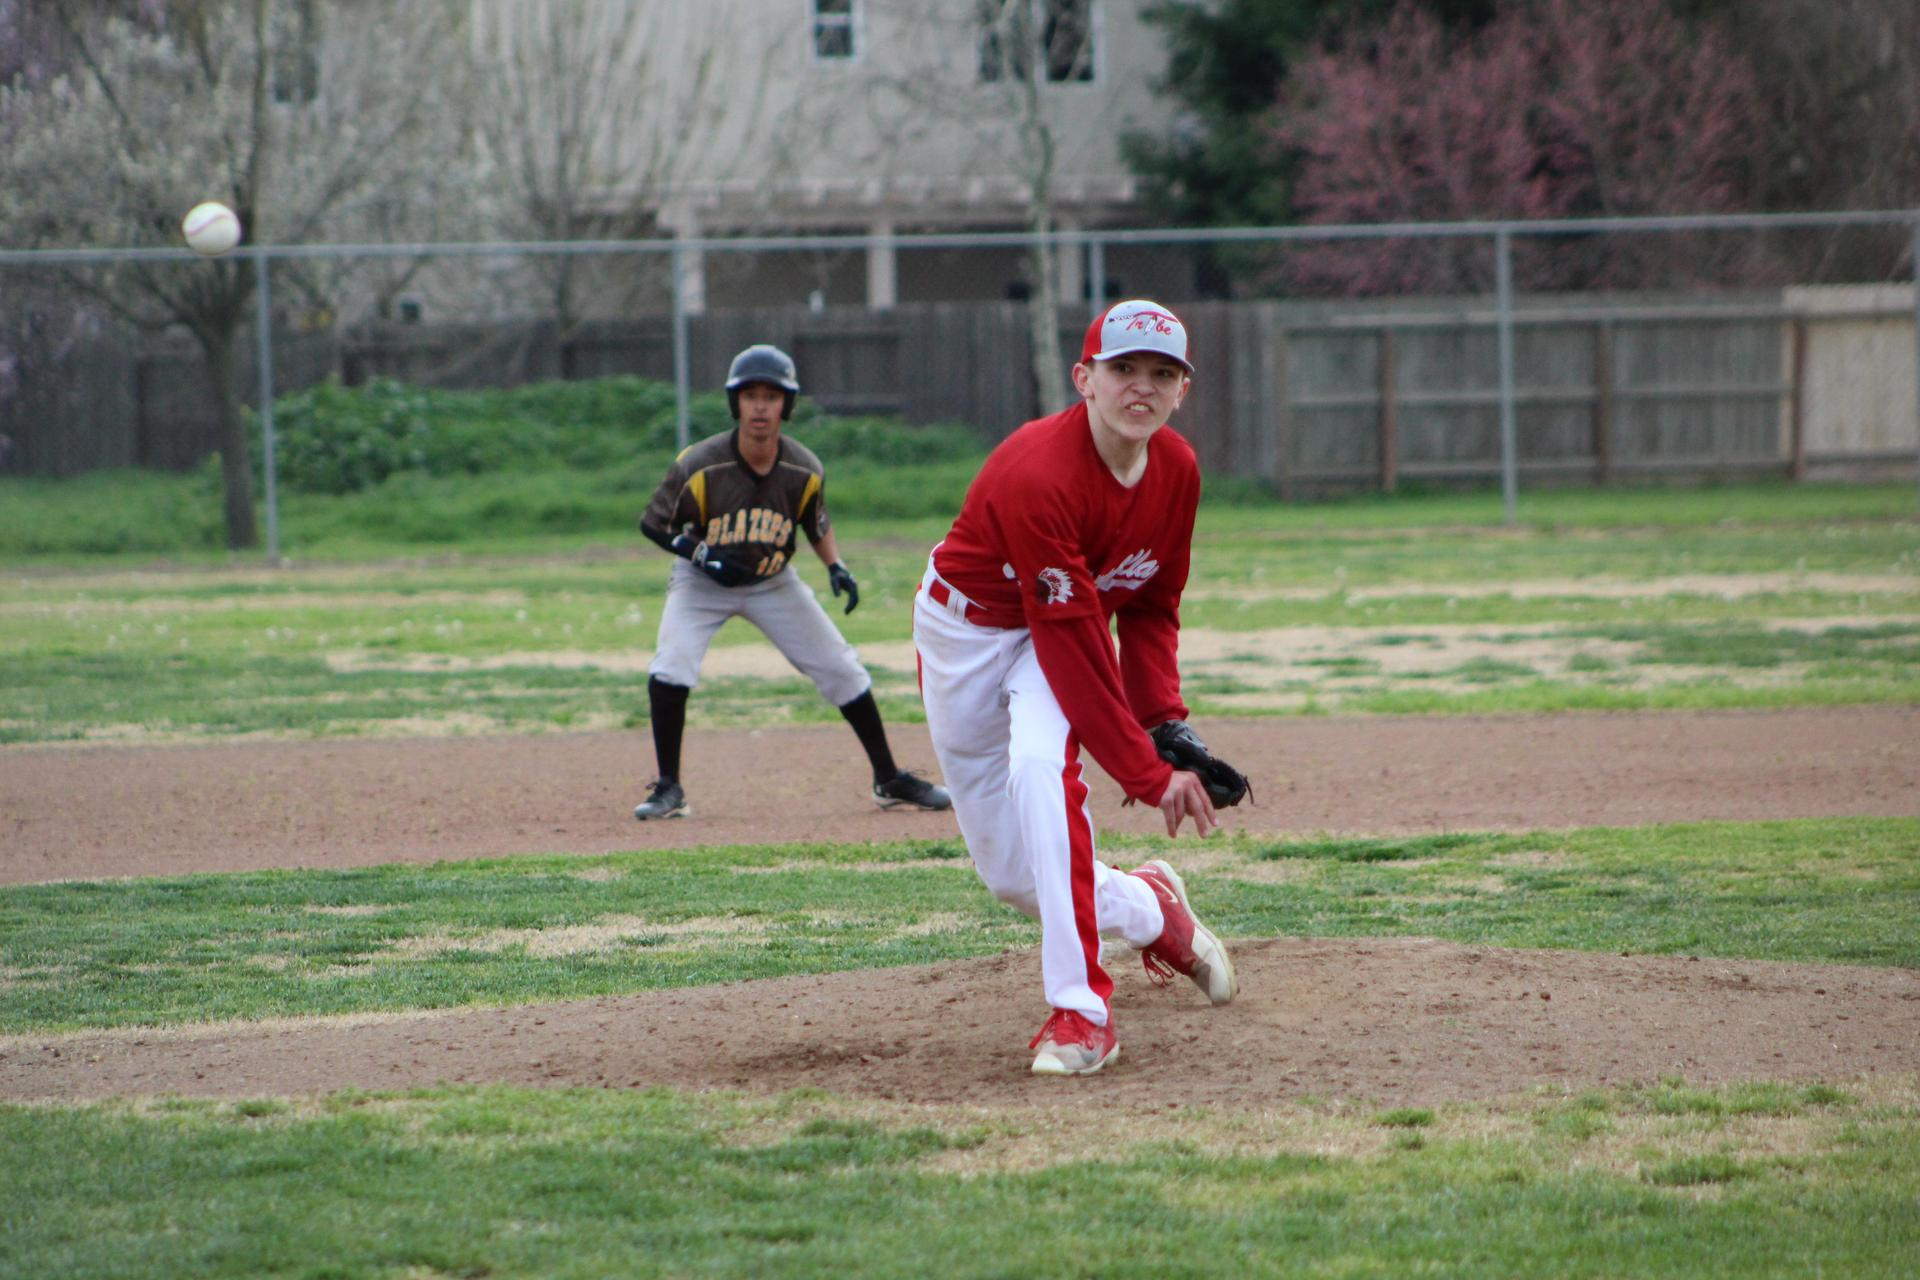 JV baseball players in action against Golden West